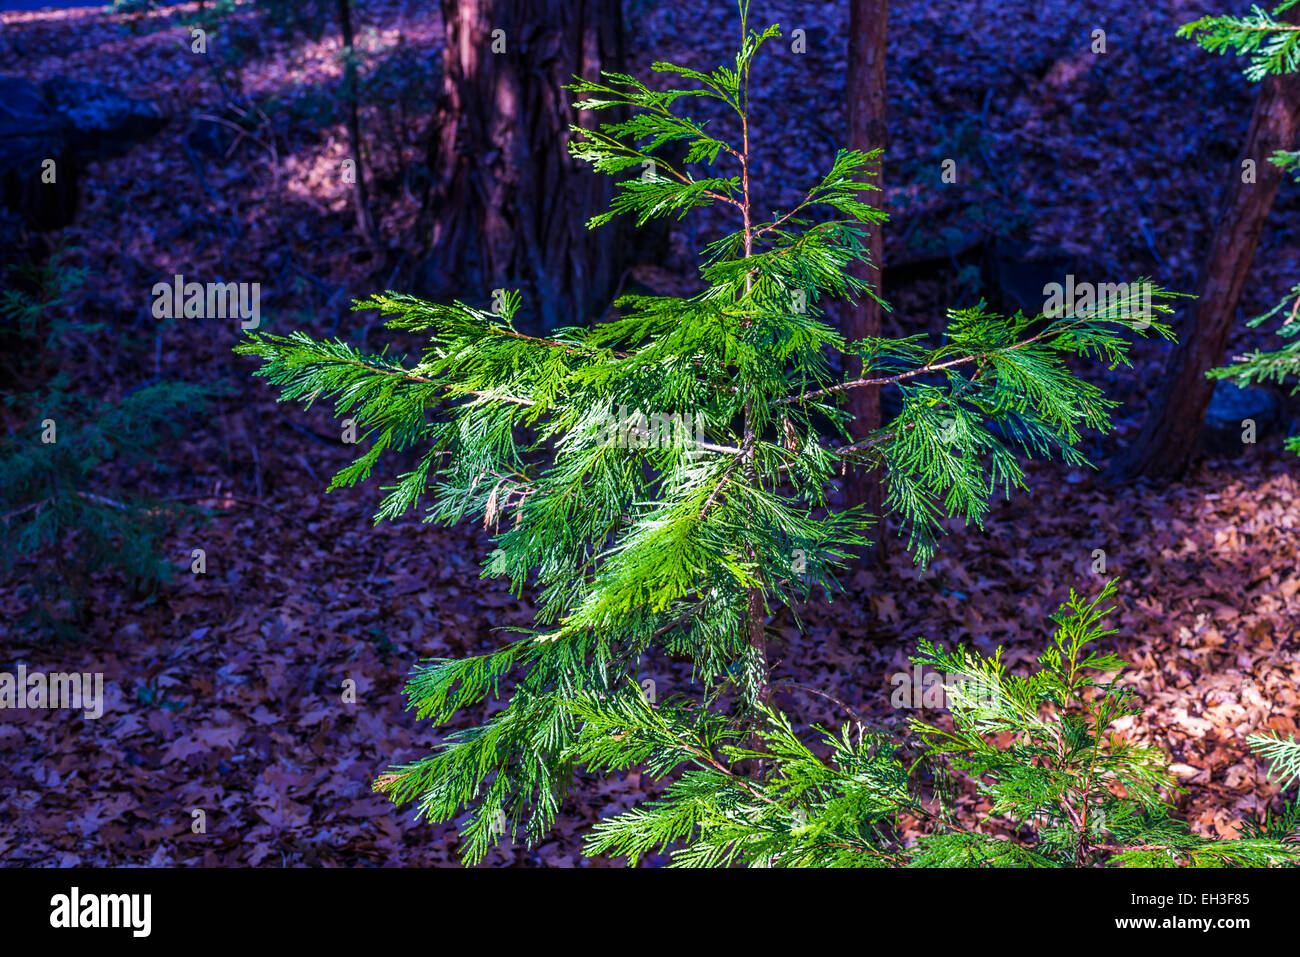 Colorful small sized pine tree. - Stock Image